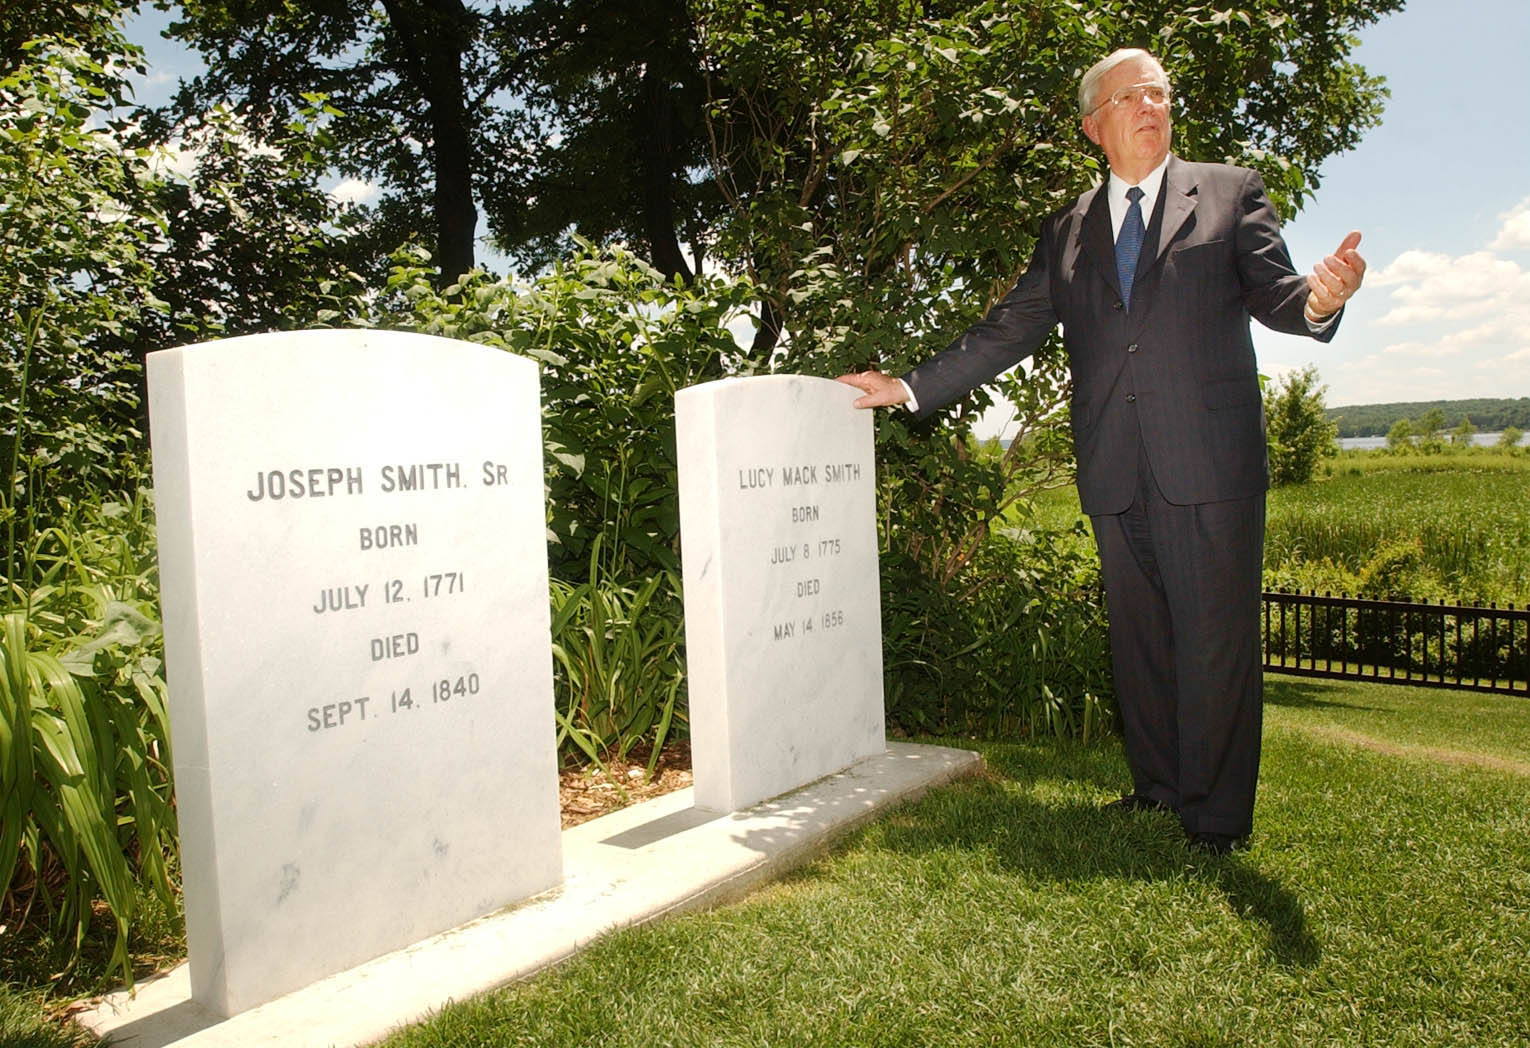 President M. Russell Ballard, now Acting President of the Quorum of the Twelve Apostles, talks about grave sites of Joseph and Hyrum Smith commemoration service June 27th, 2002.